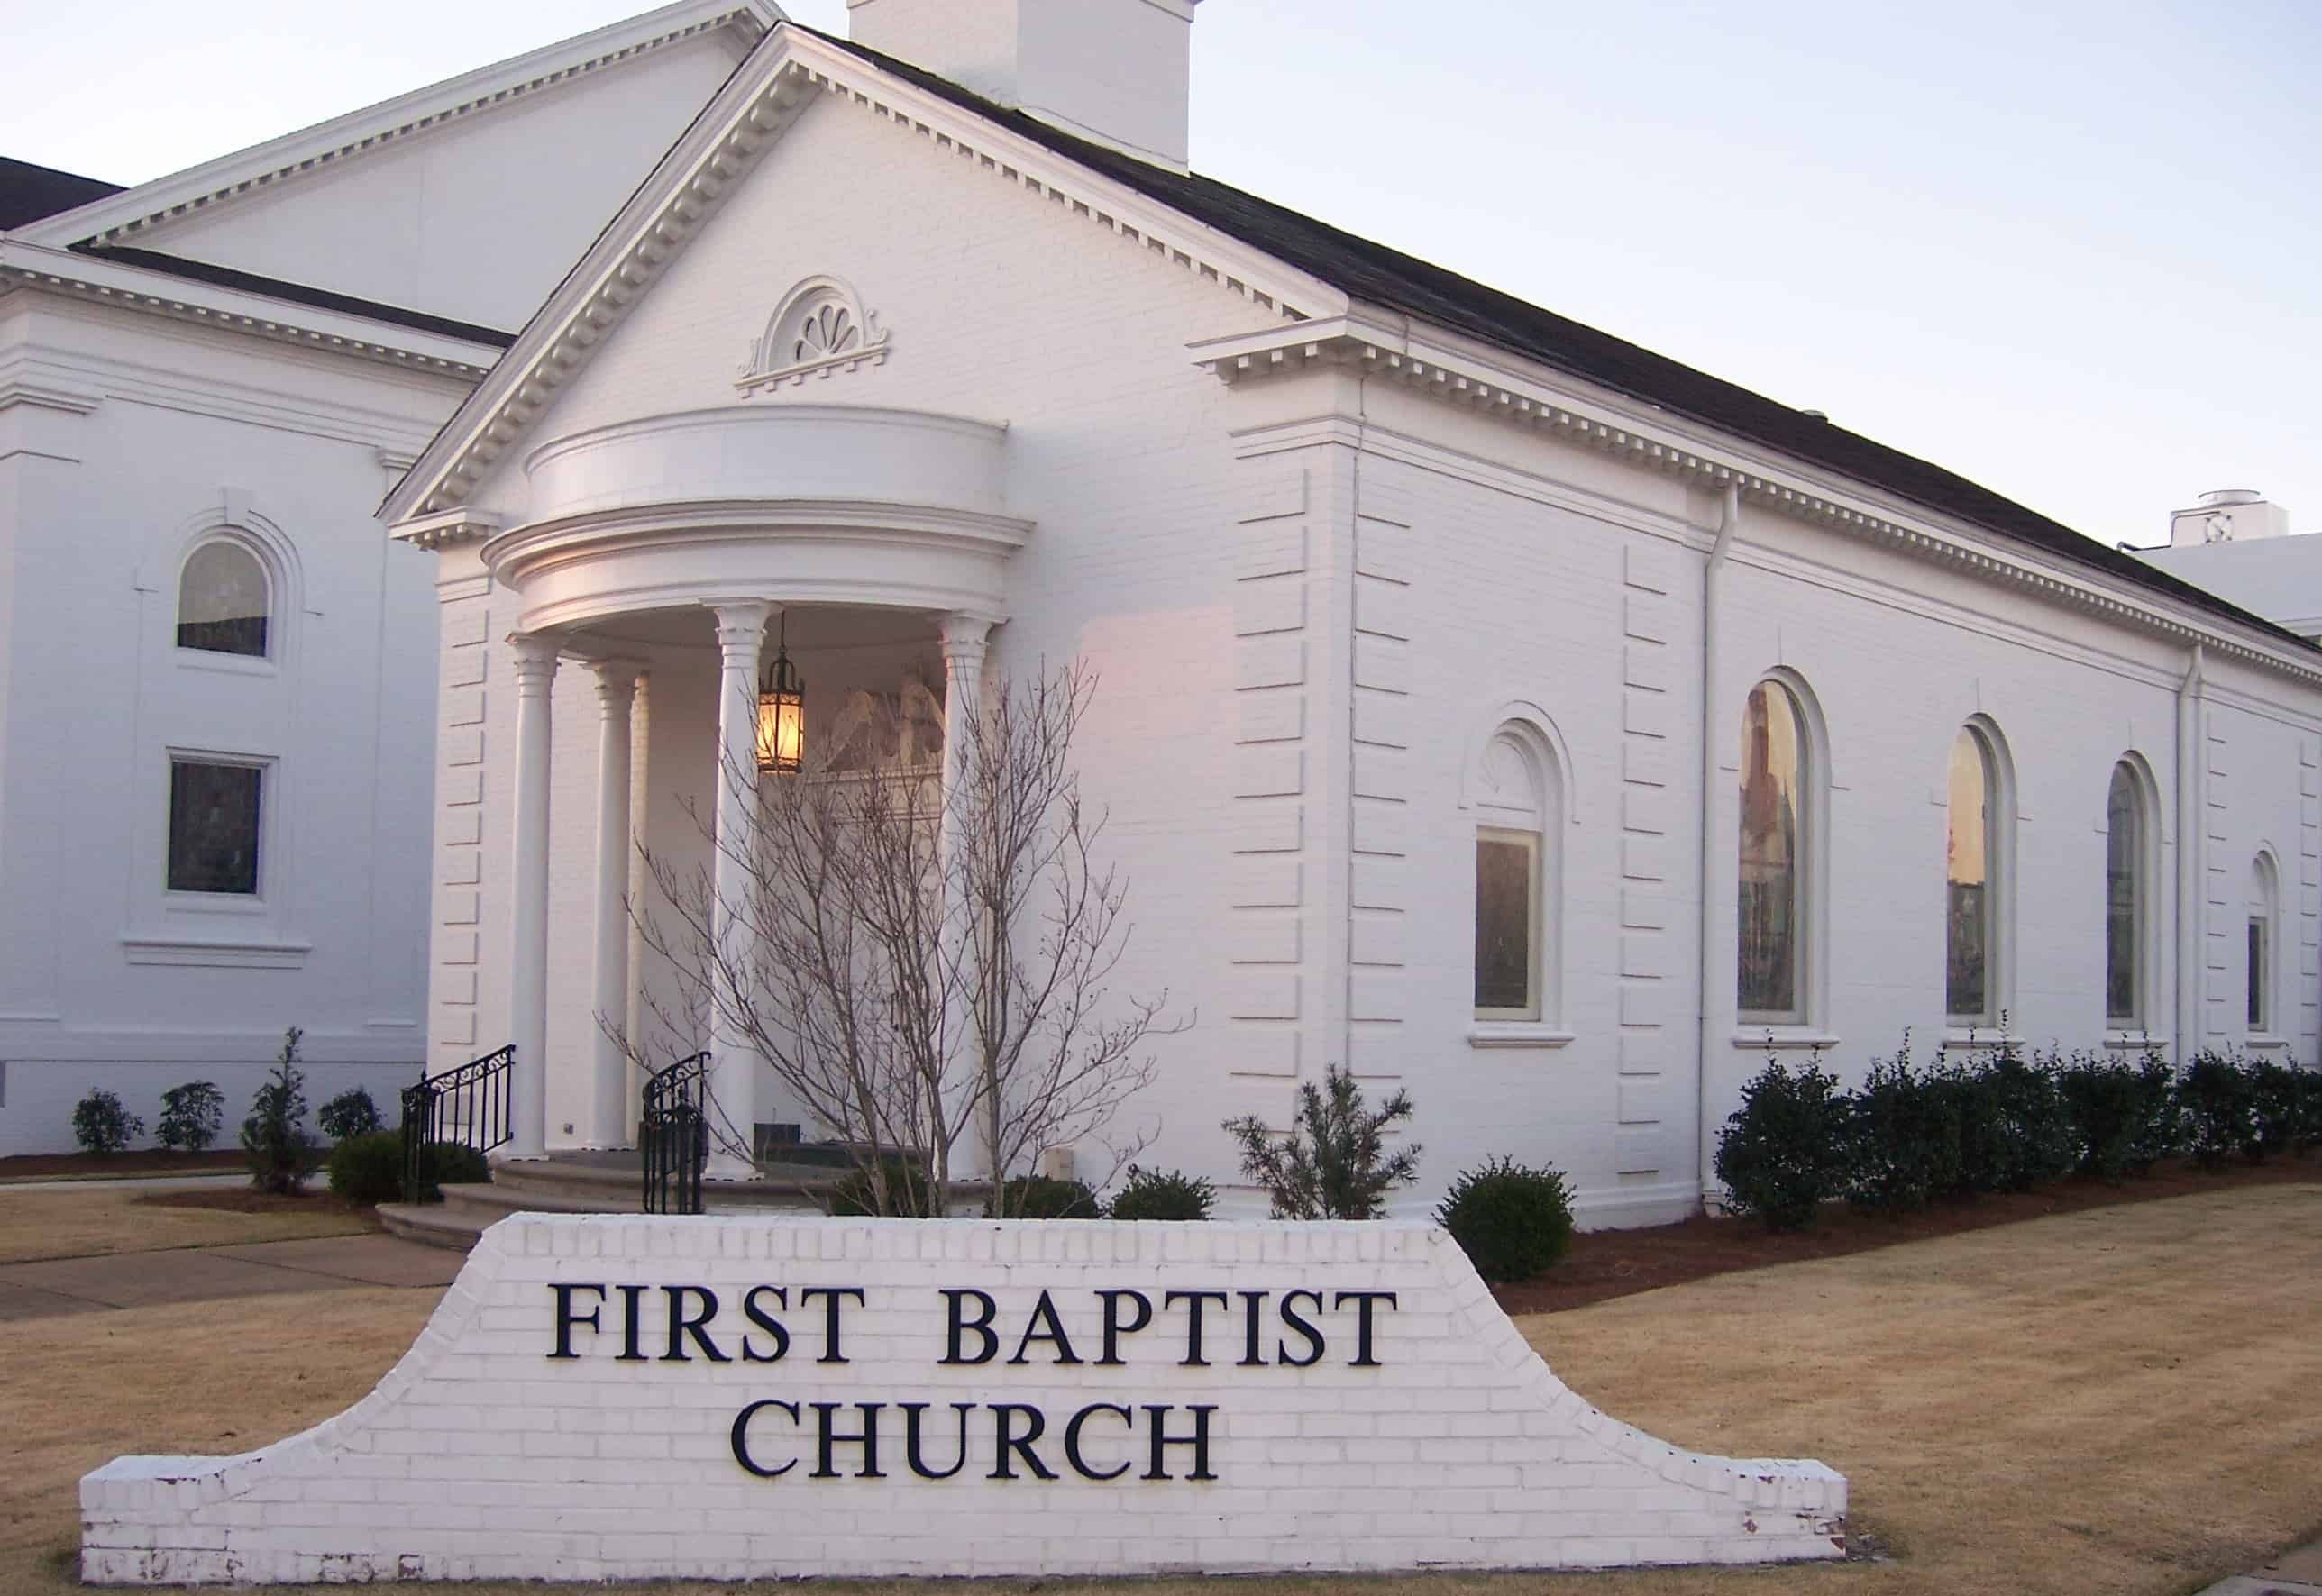 First Baptist Church In Opelika, Alabama